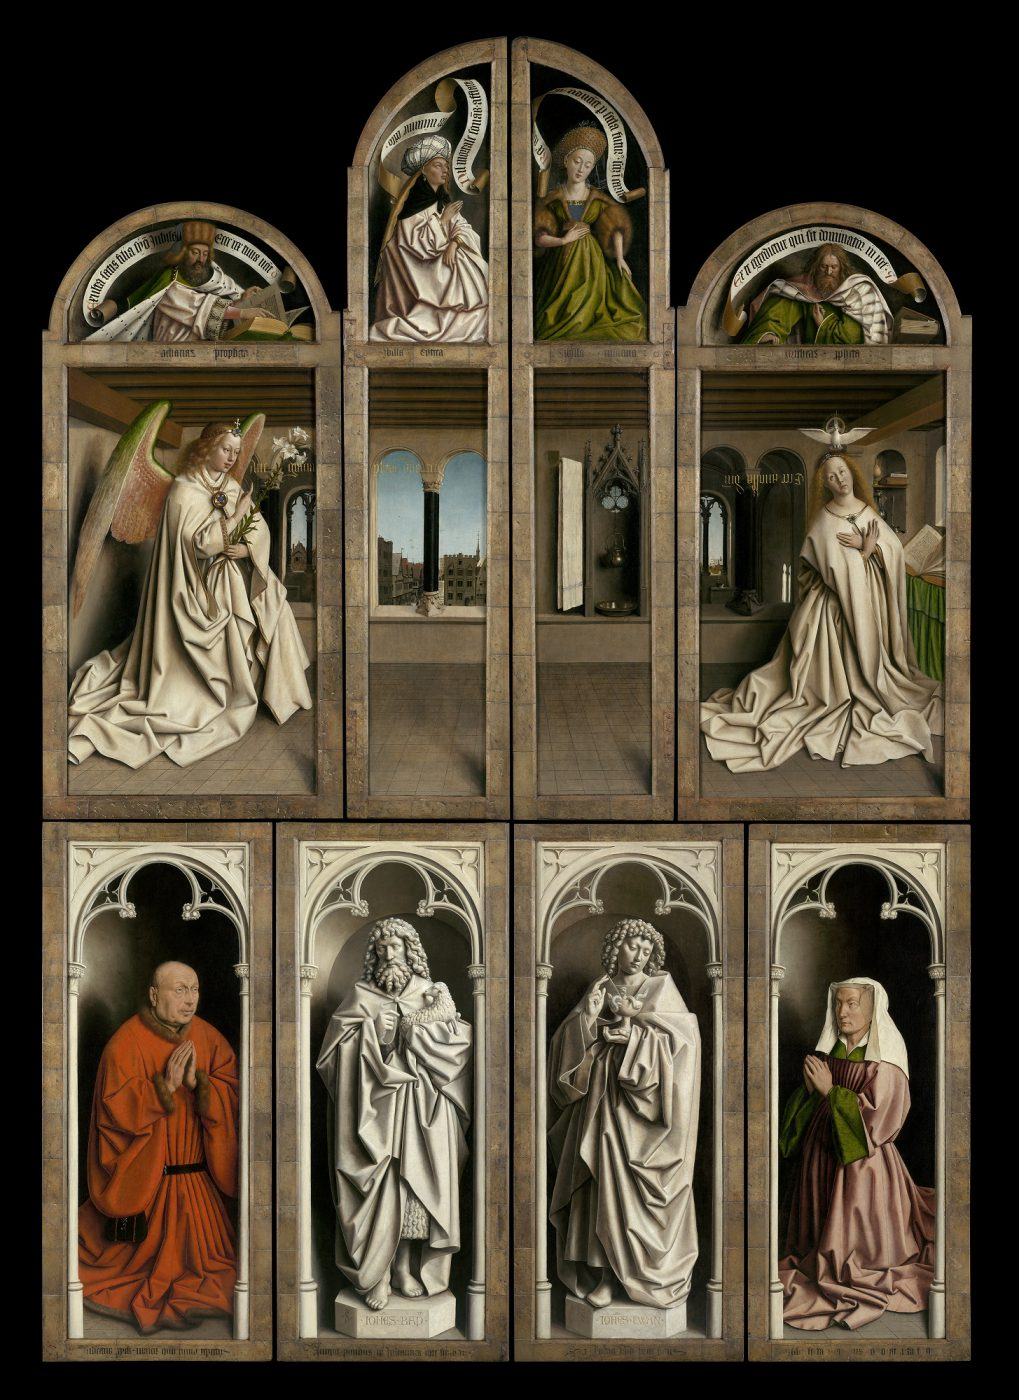 Jan en Hubert van Eyck, The Adoration of the Mystic Lamb, 1432 (outer panels) (St Bavo's Cathedral, Ghent © www.lukasweb.be - Art in Flanders vzw)